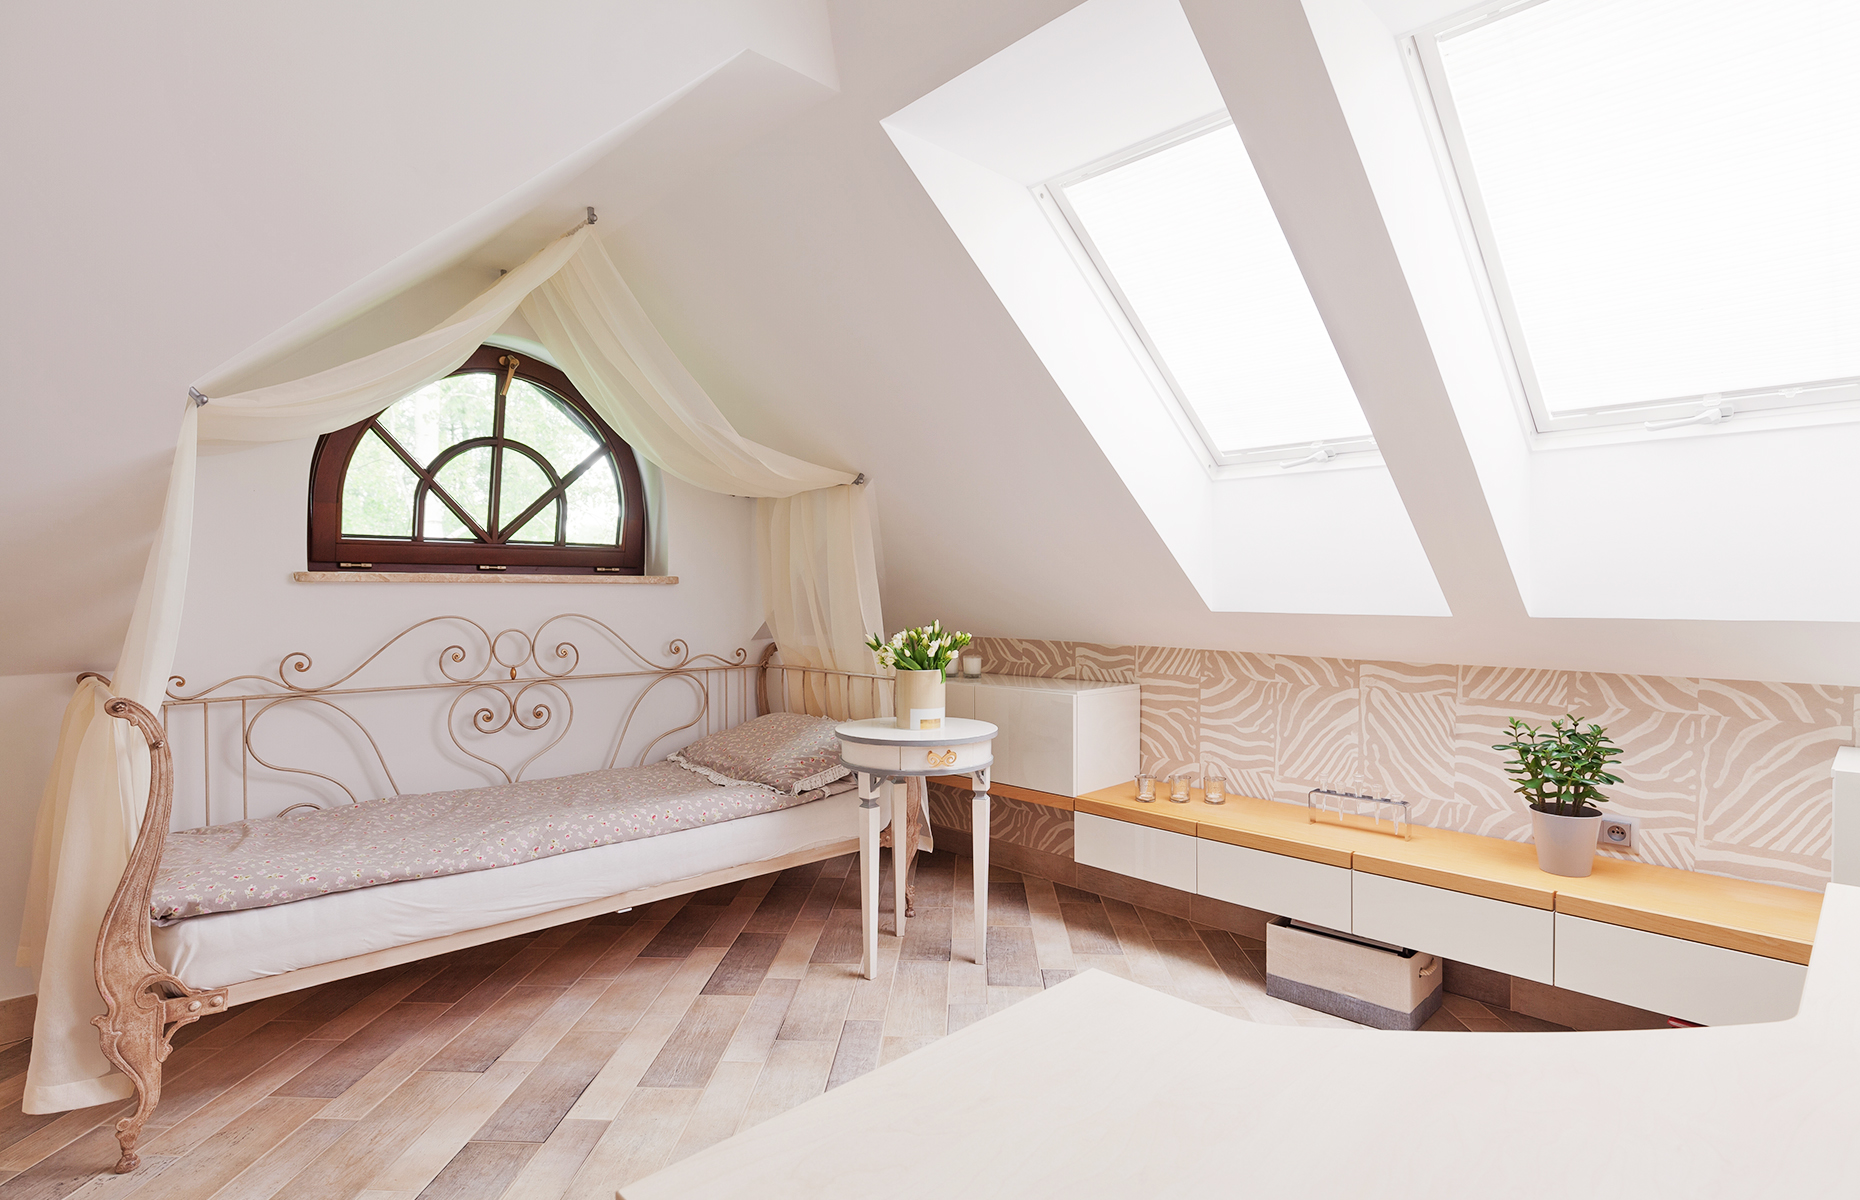 How To Make The Most Of An Awkwardly Shaped Room